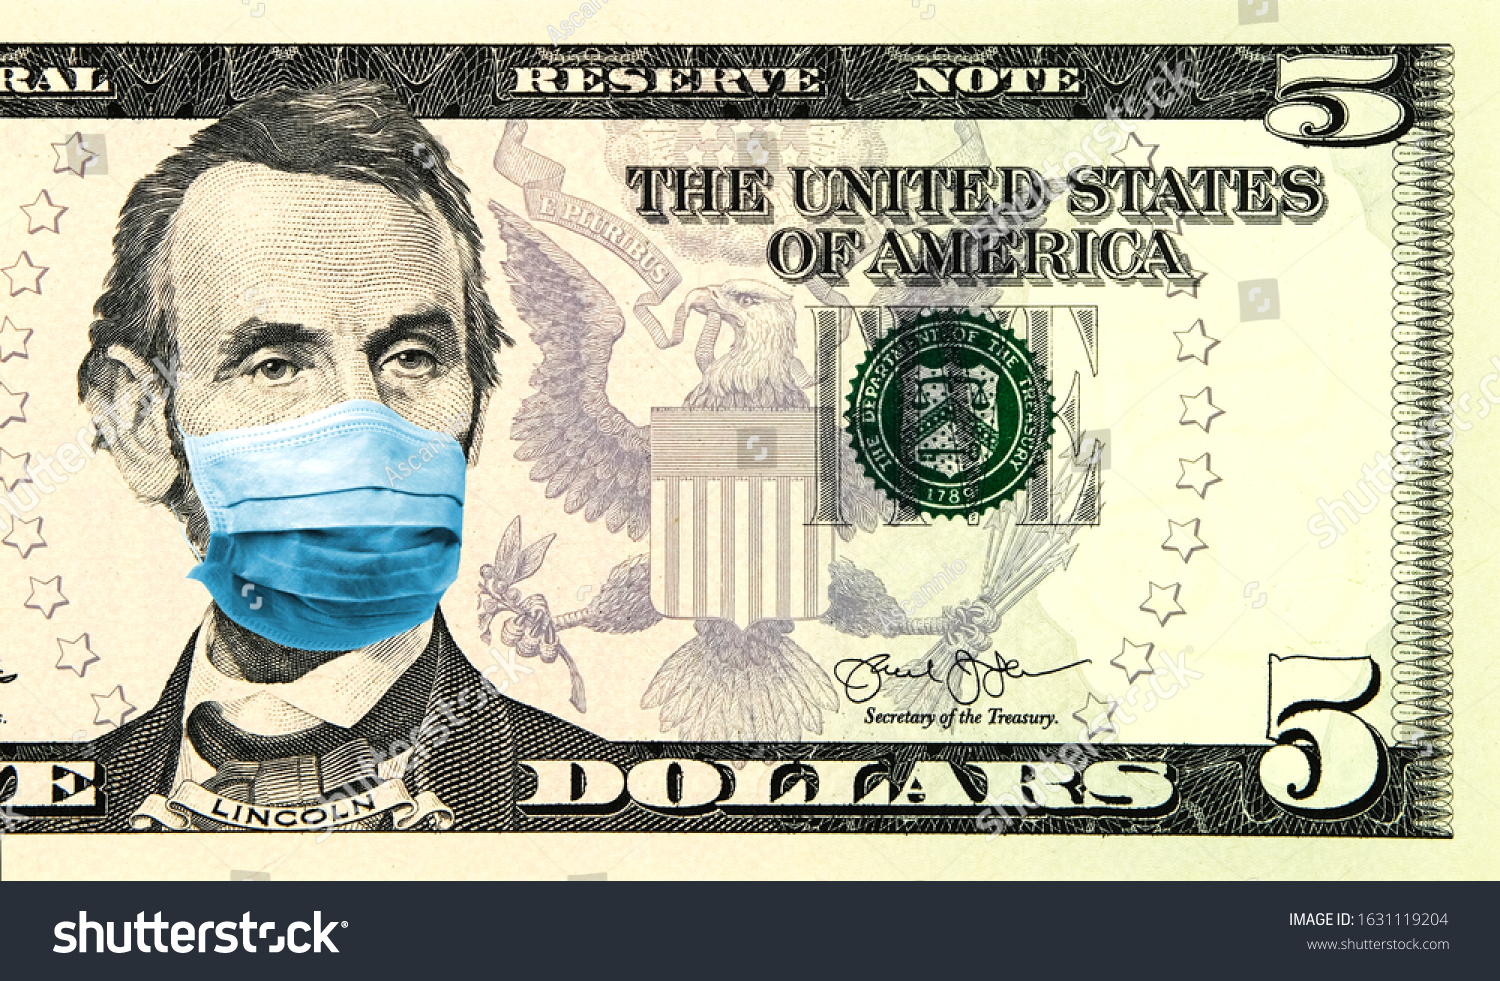 Coronavirus panic in United States. Quarantine and global recession. 5 American dollar banknote with a face mask against infection. Global economy hit by corona virus pandemic. Montage. Concept #1631119204